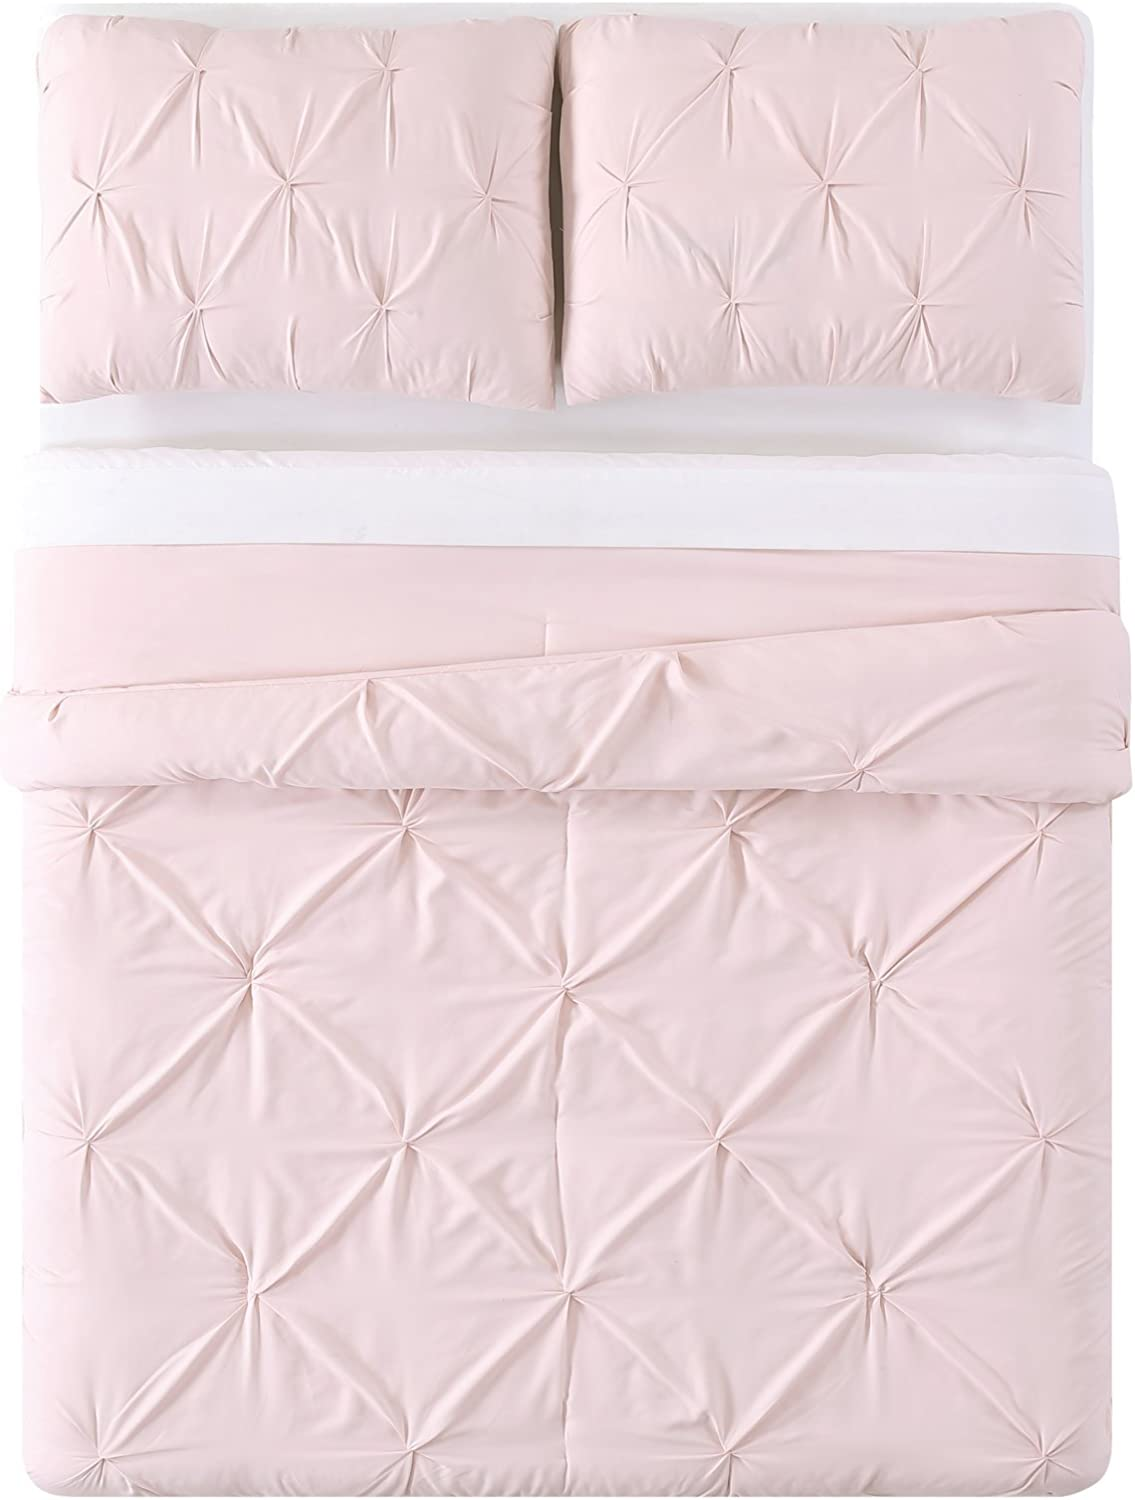 Truly Soft Everyday Pleated Comforter Set, Full/Queen, Blush